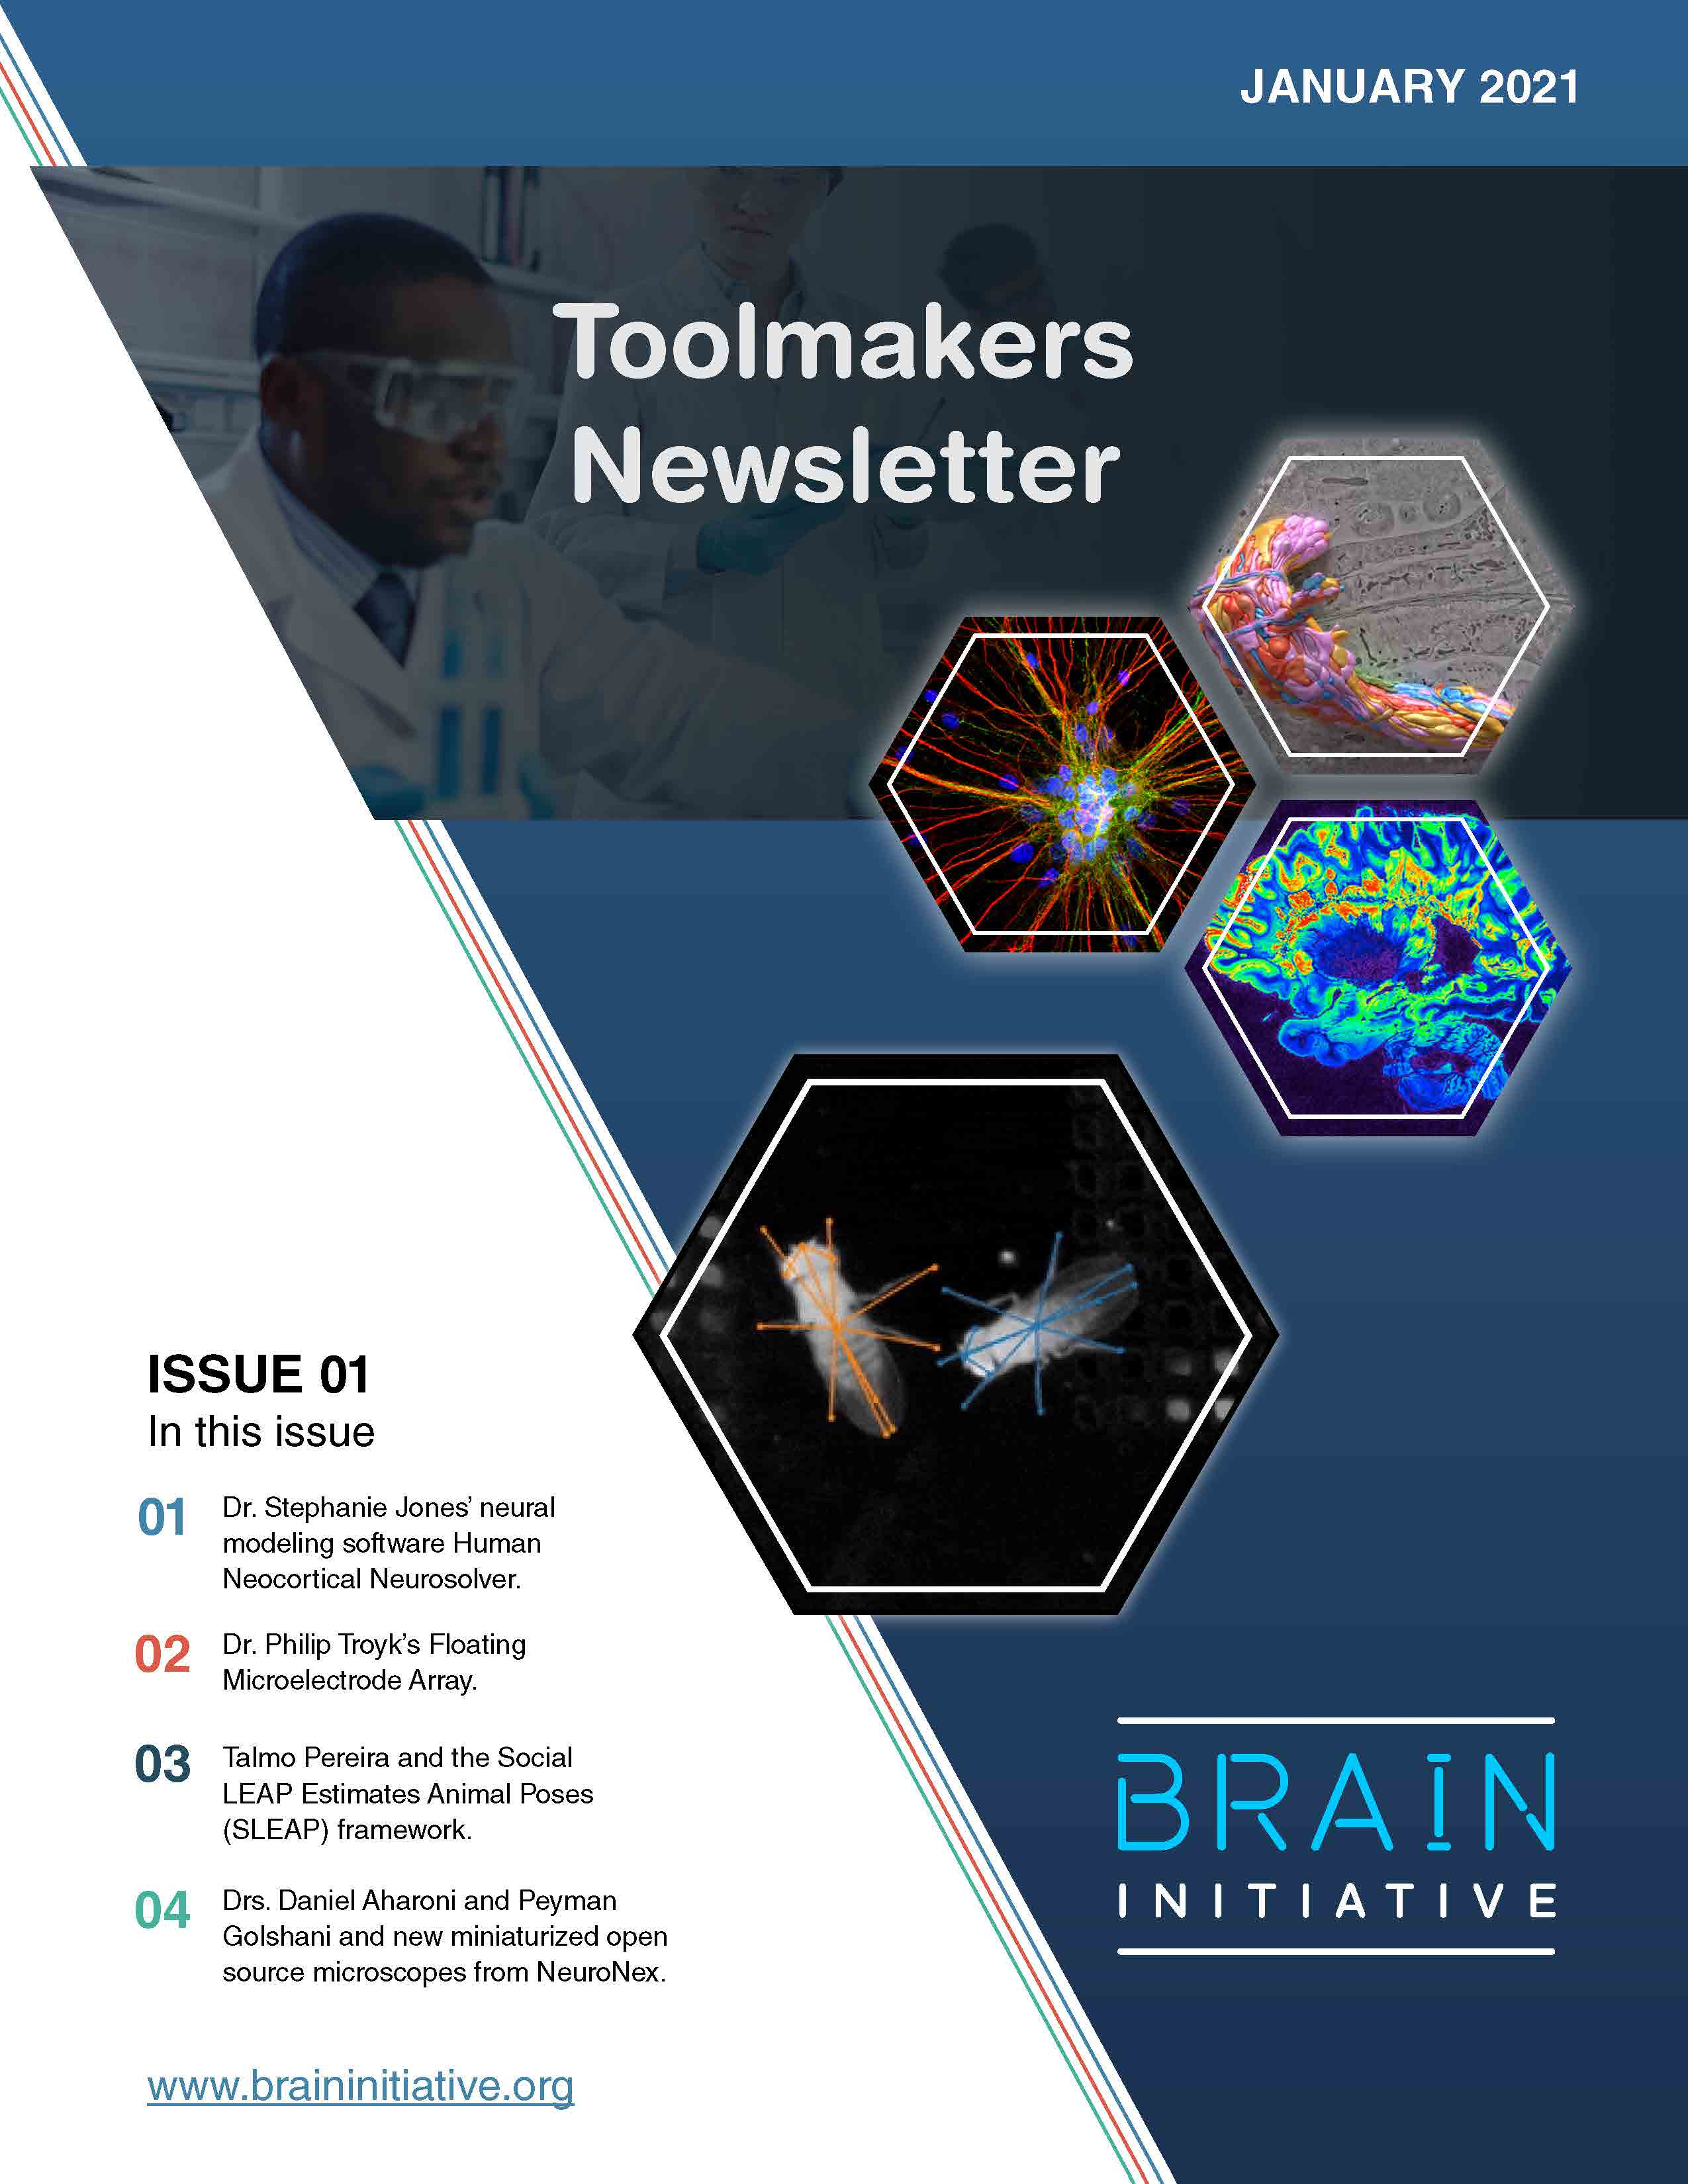 BRAIN toolmakers newsletter_issue 1_Jan2020_cover page